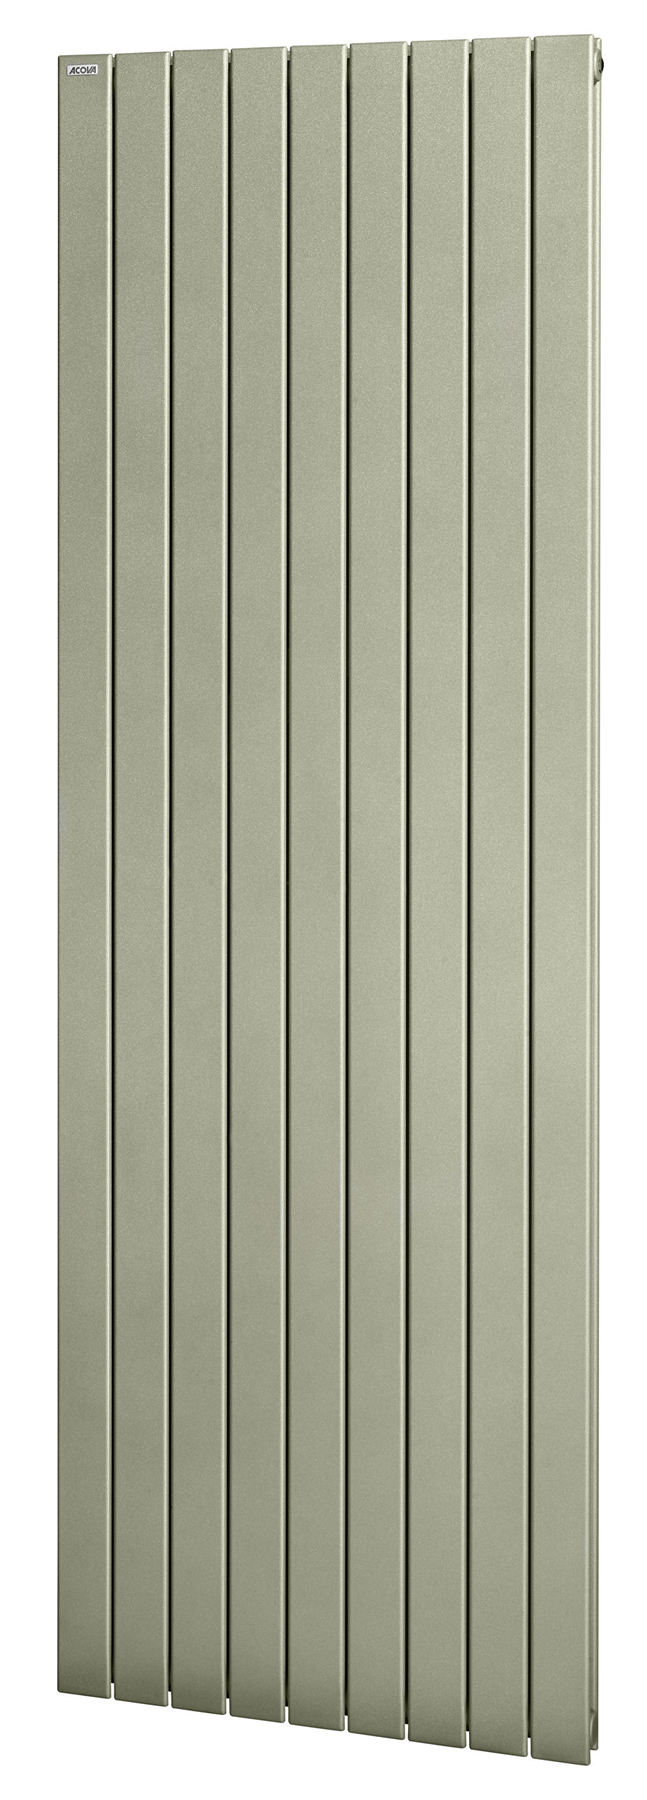 acova radiateur chauffage central fassane stock vertical. Black Bedroom Furniture Sets. Home Design Ideas